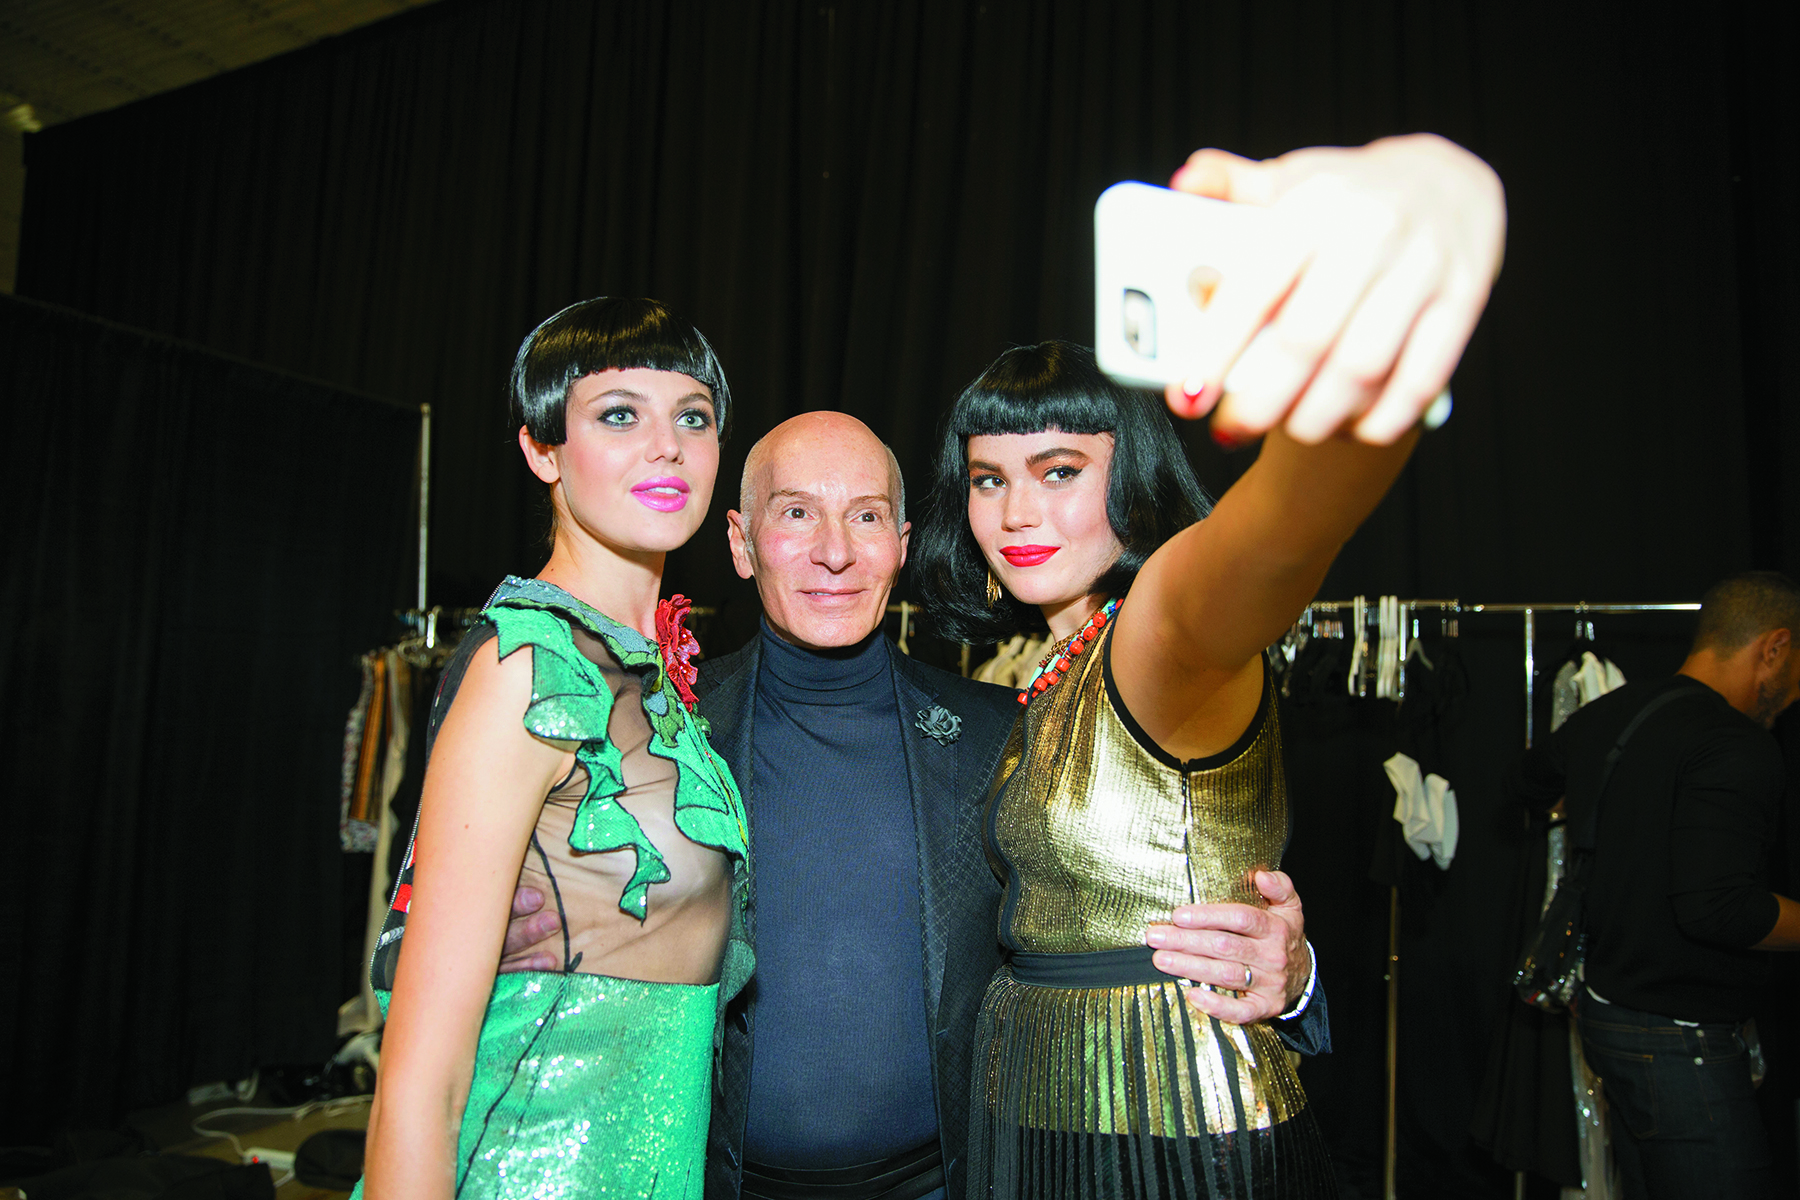 Models taking a selfie with Garren backstage.